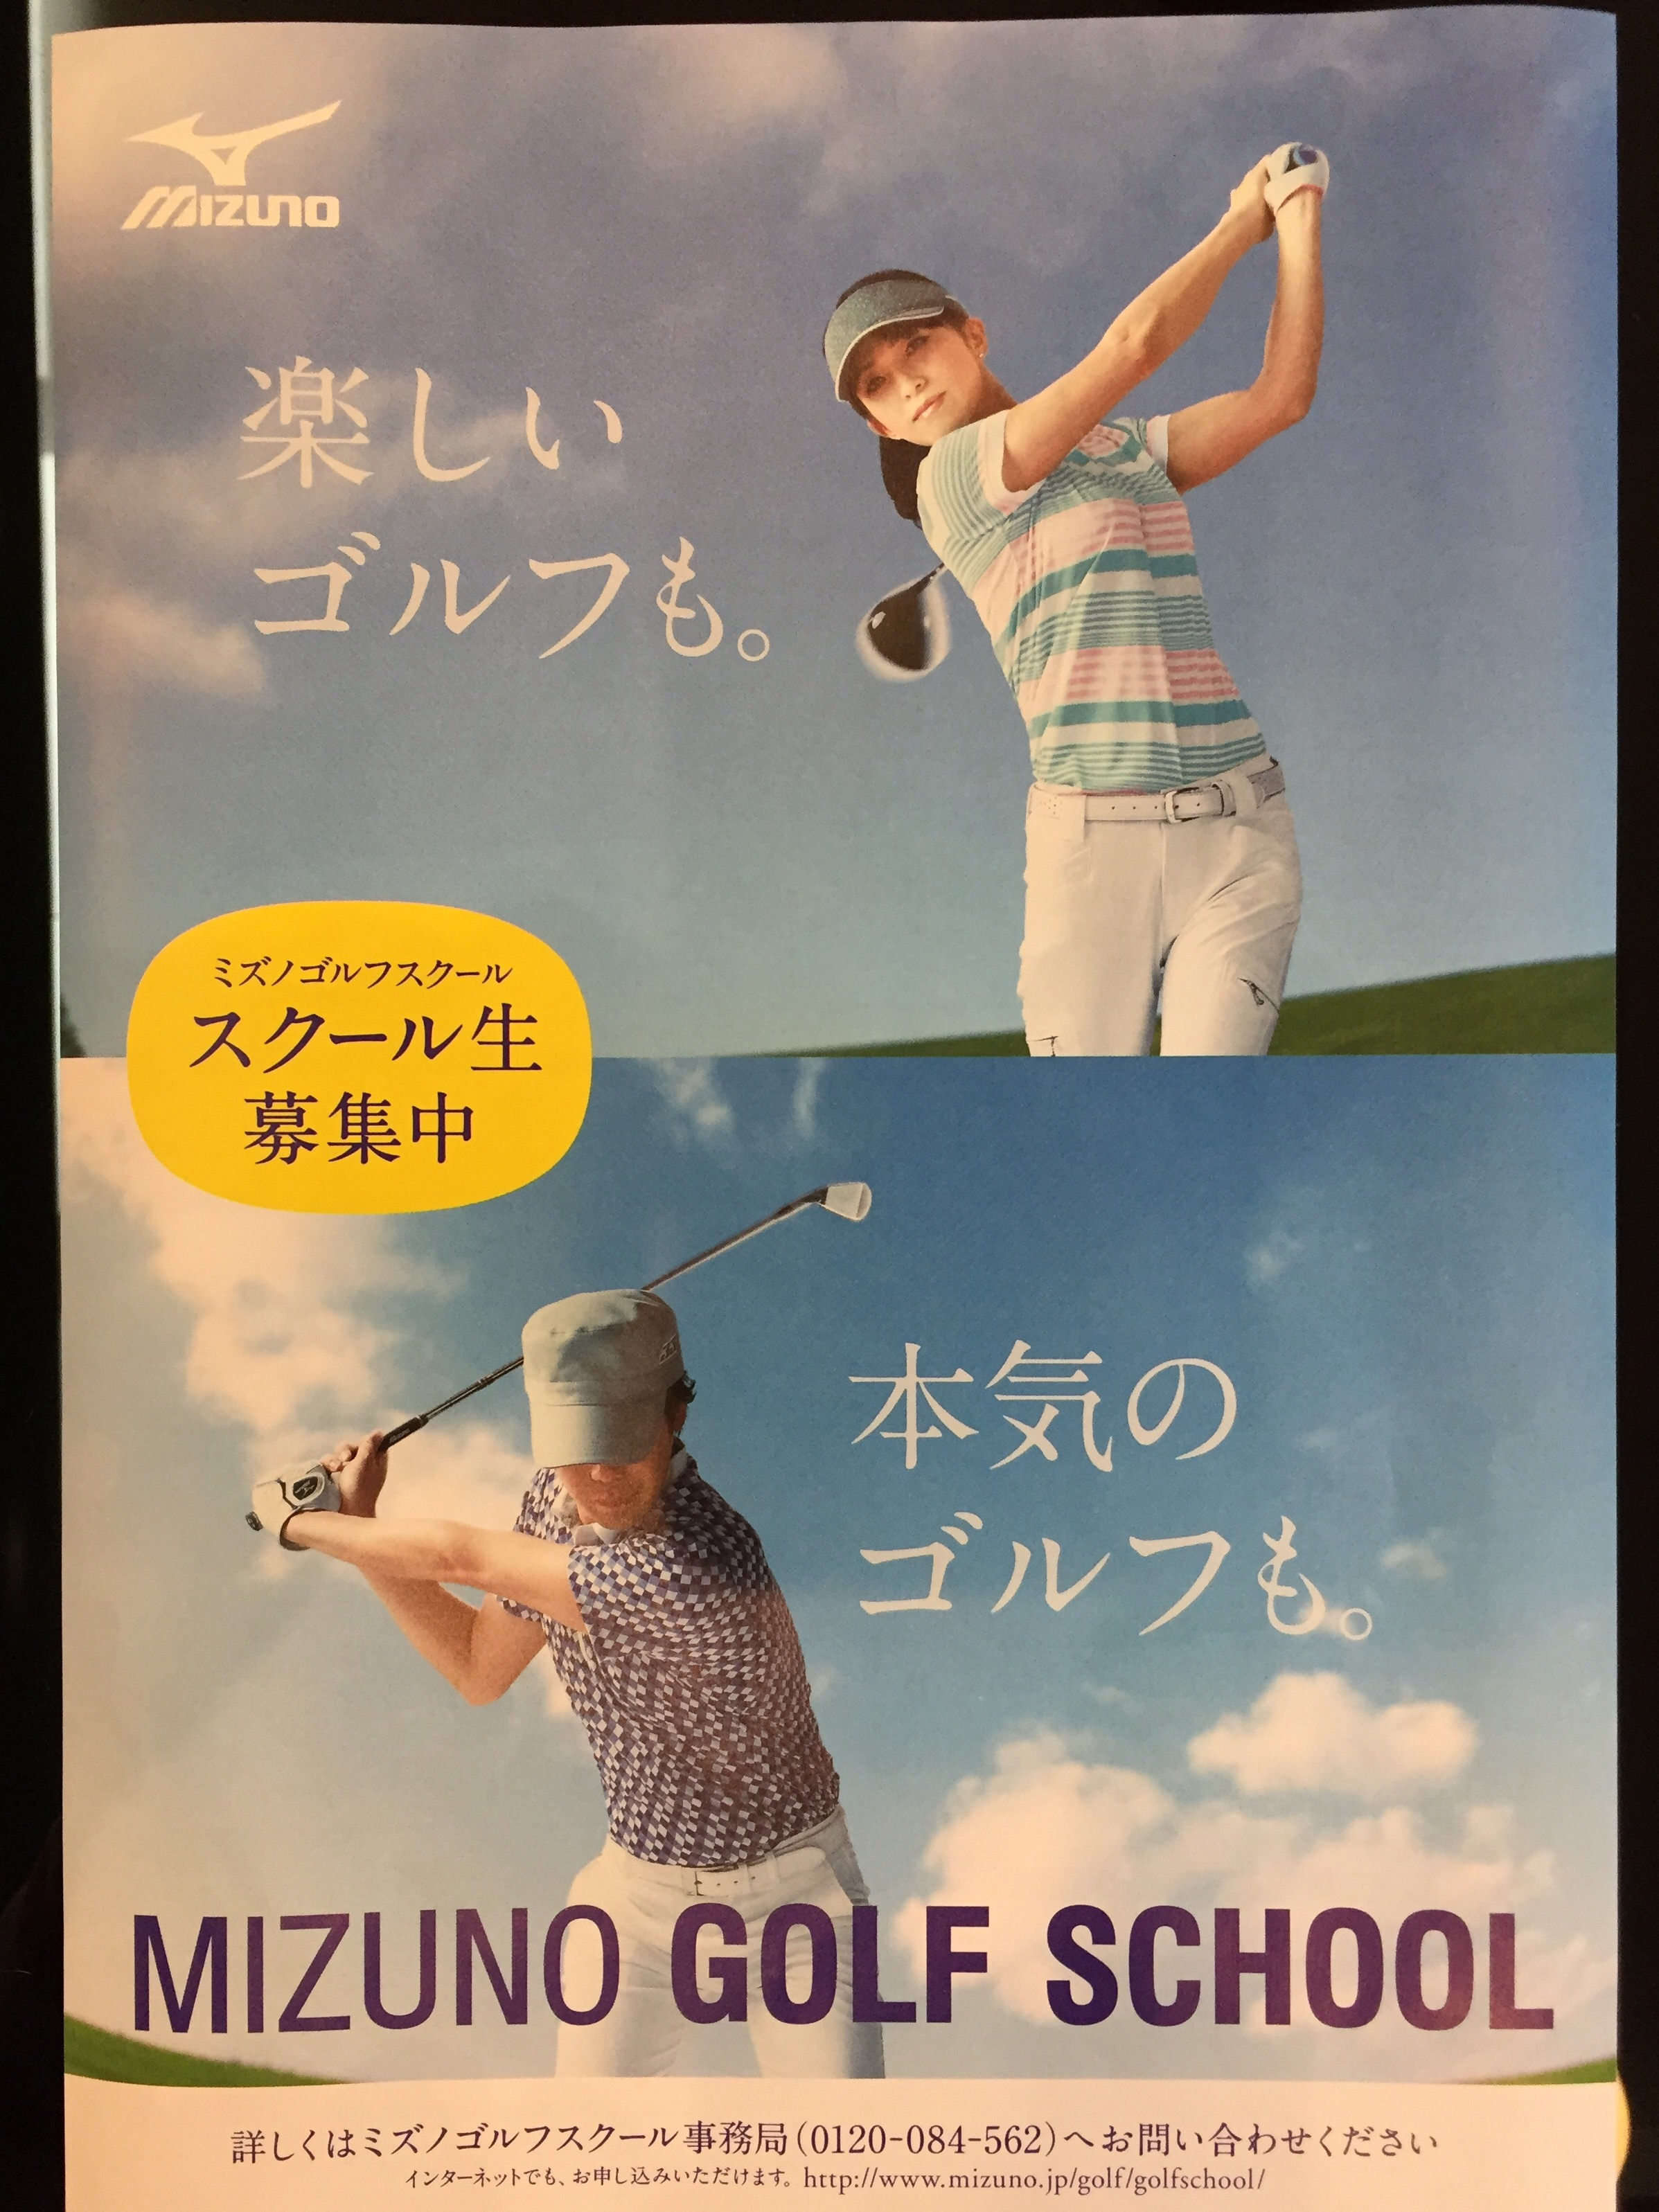 MIZUNO GOLF SCHOOL 開校